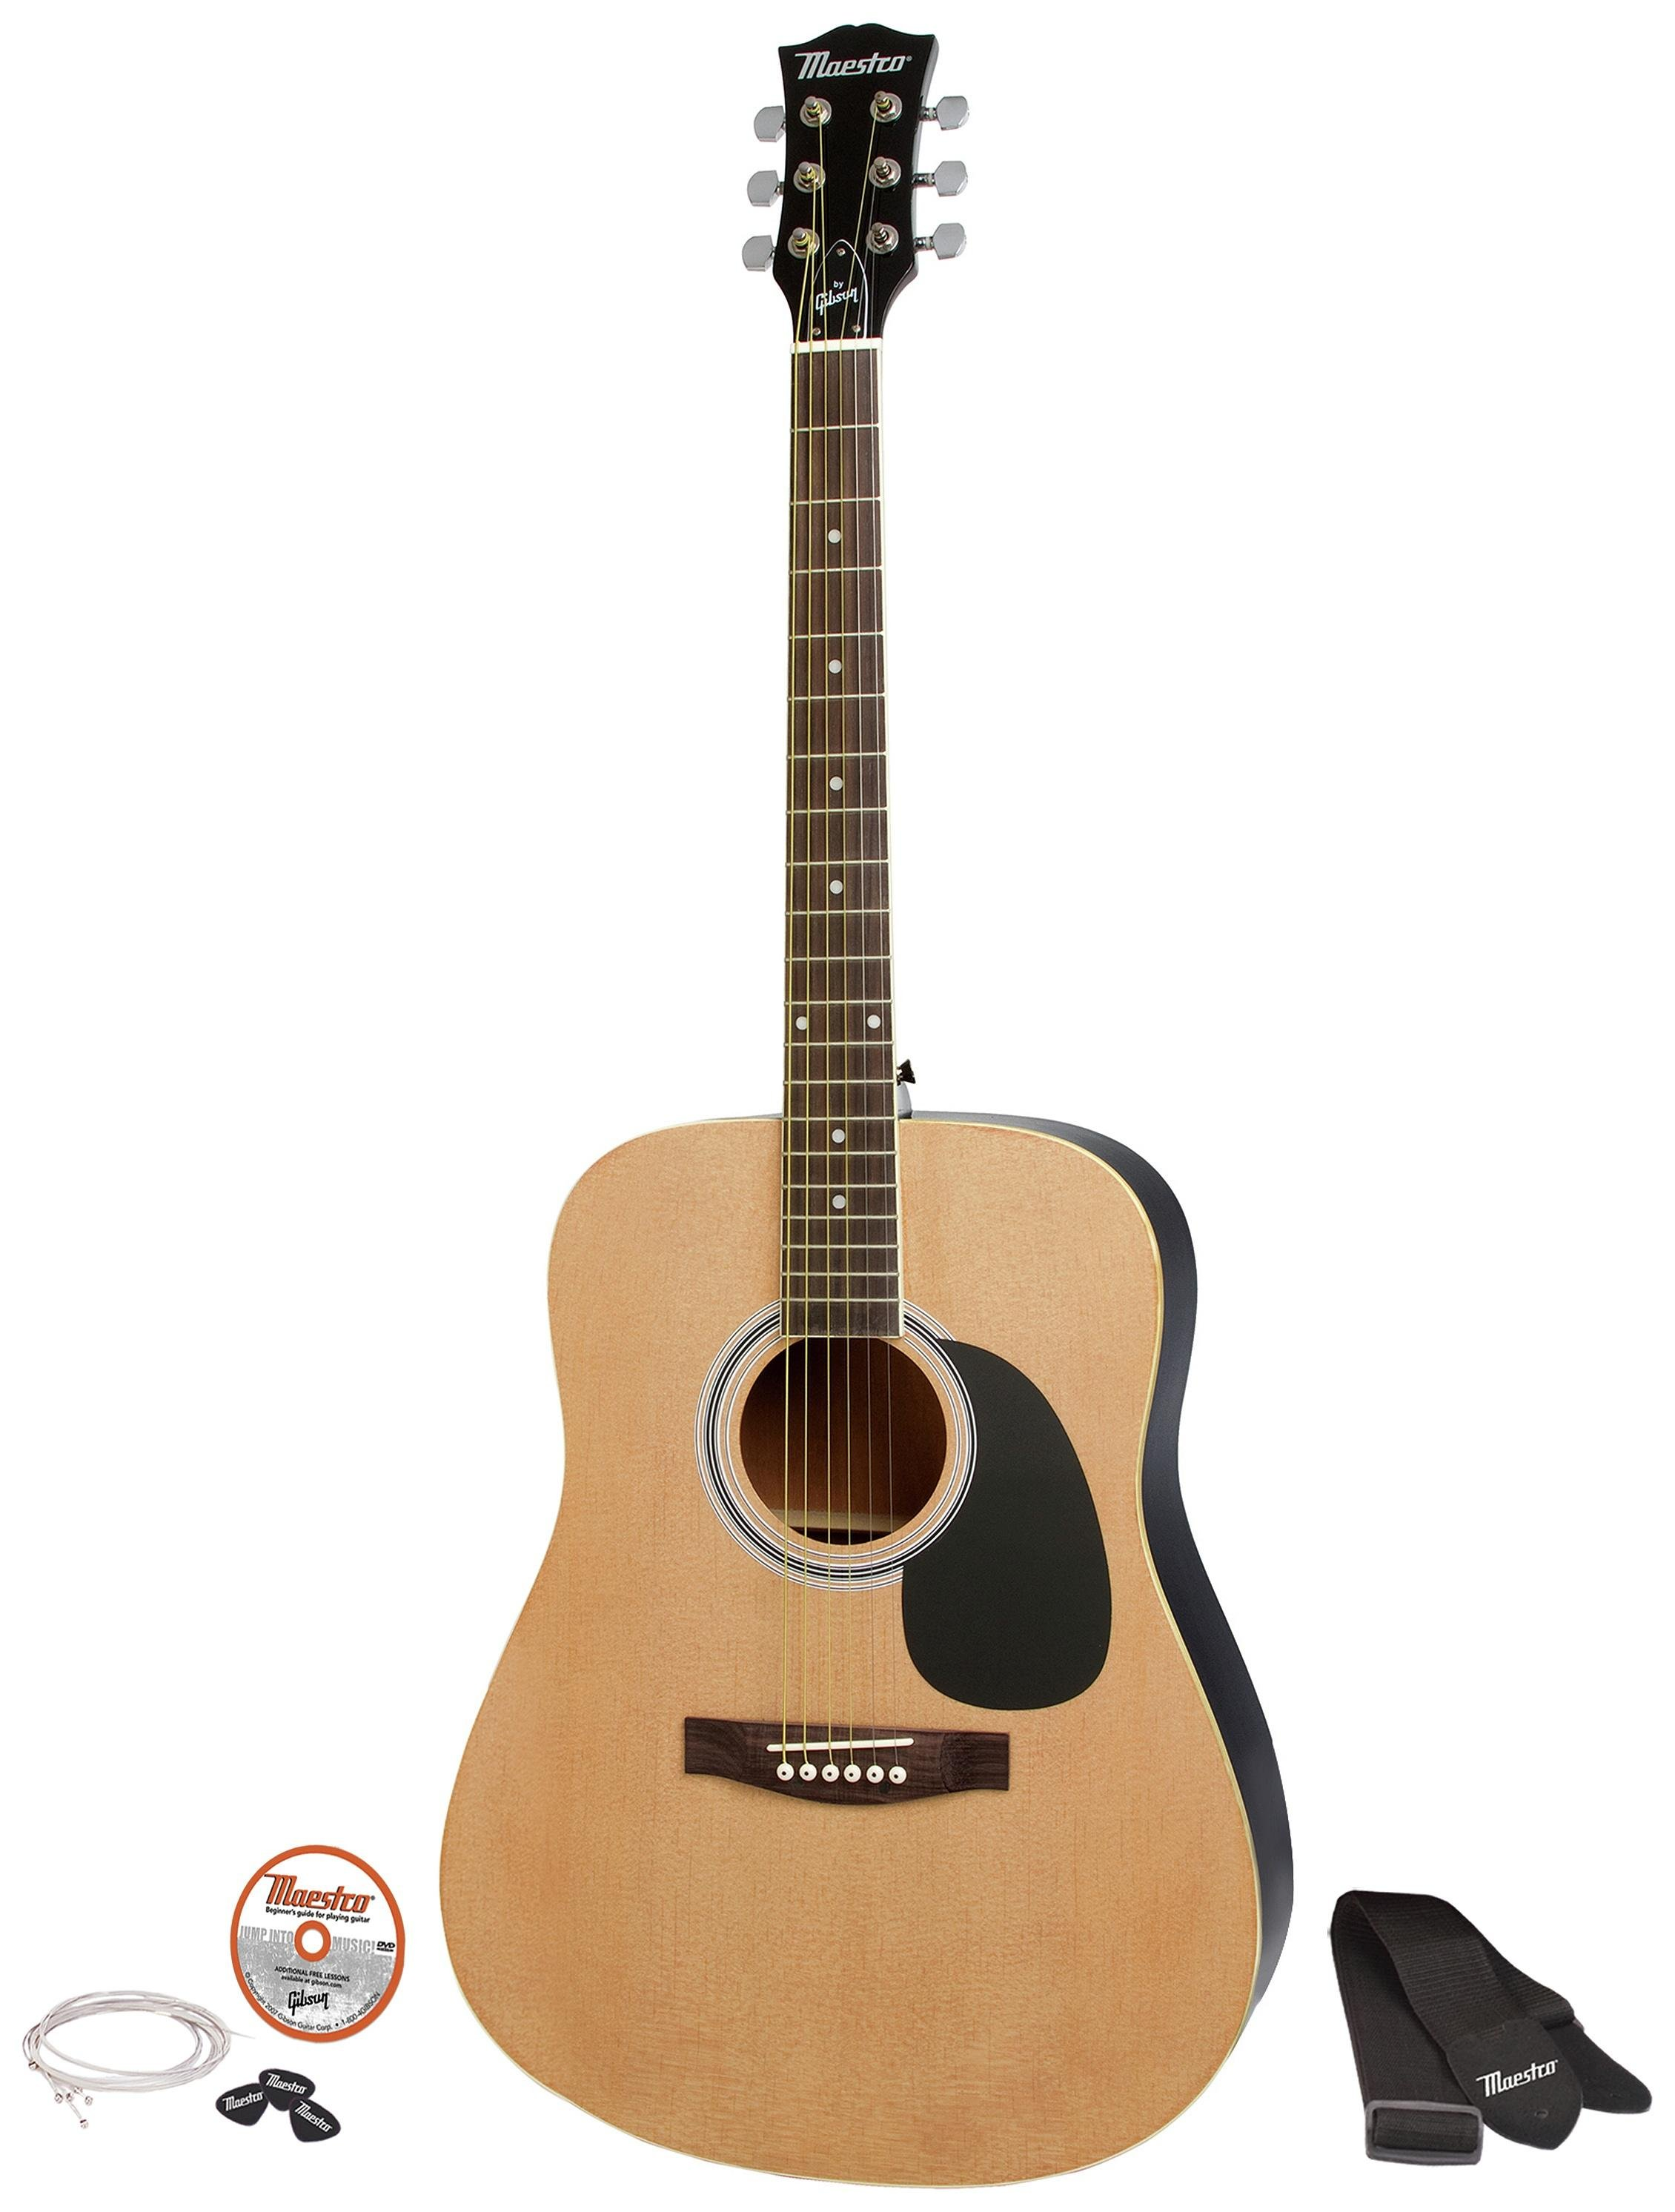 Image of Maestro by Gibson Full Size Acoustic Guitar